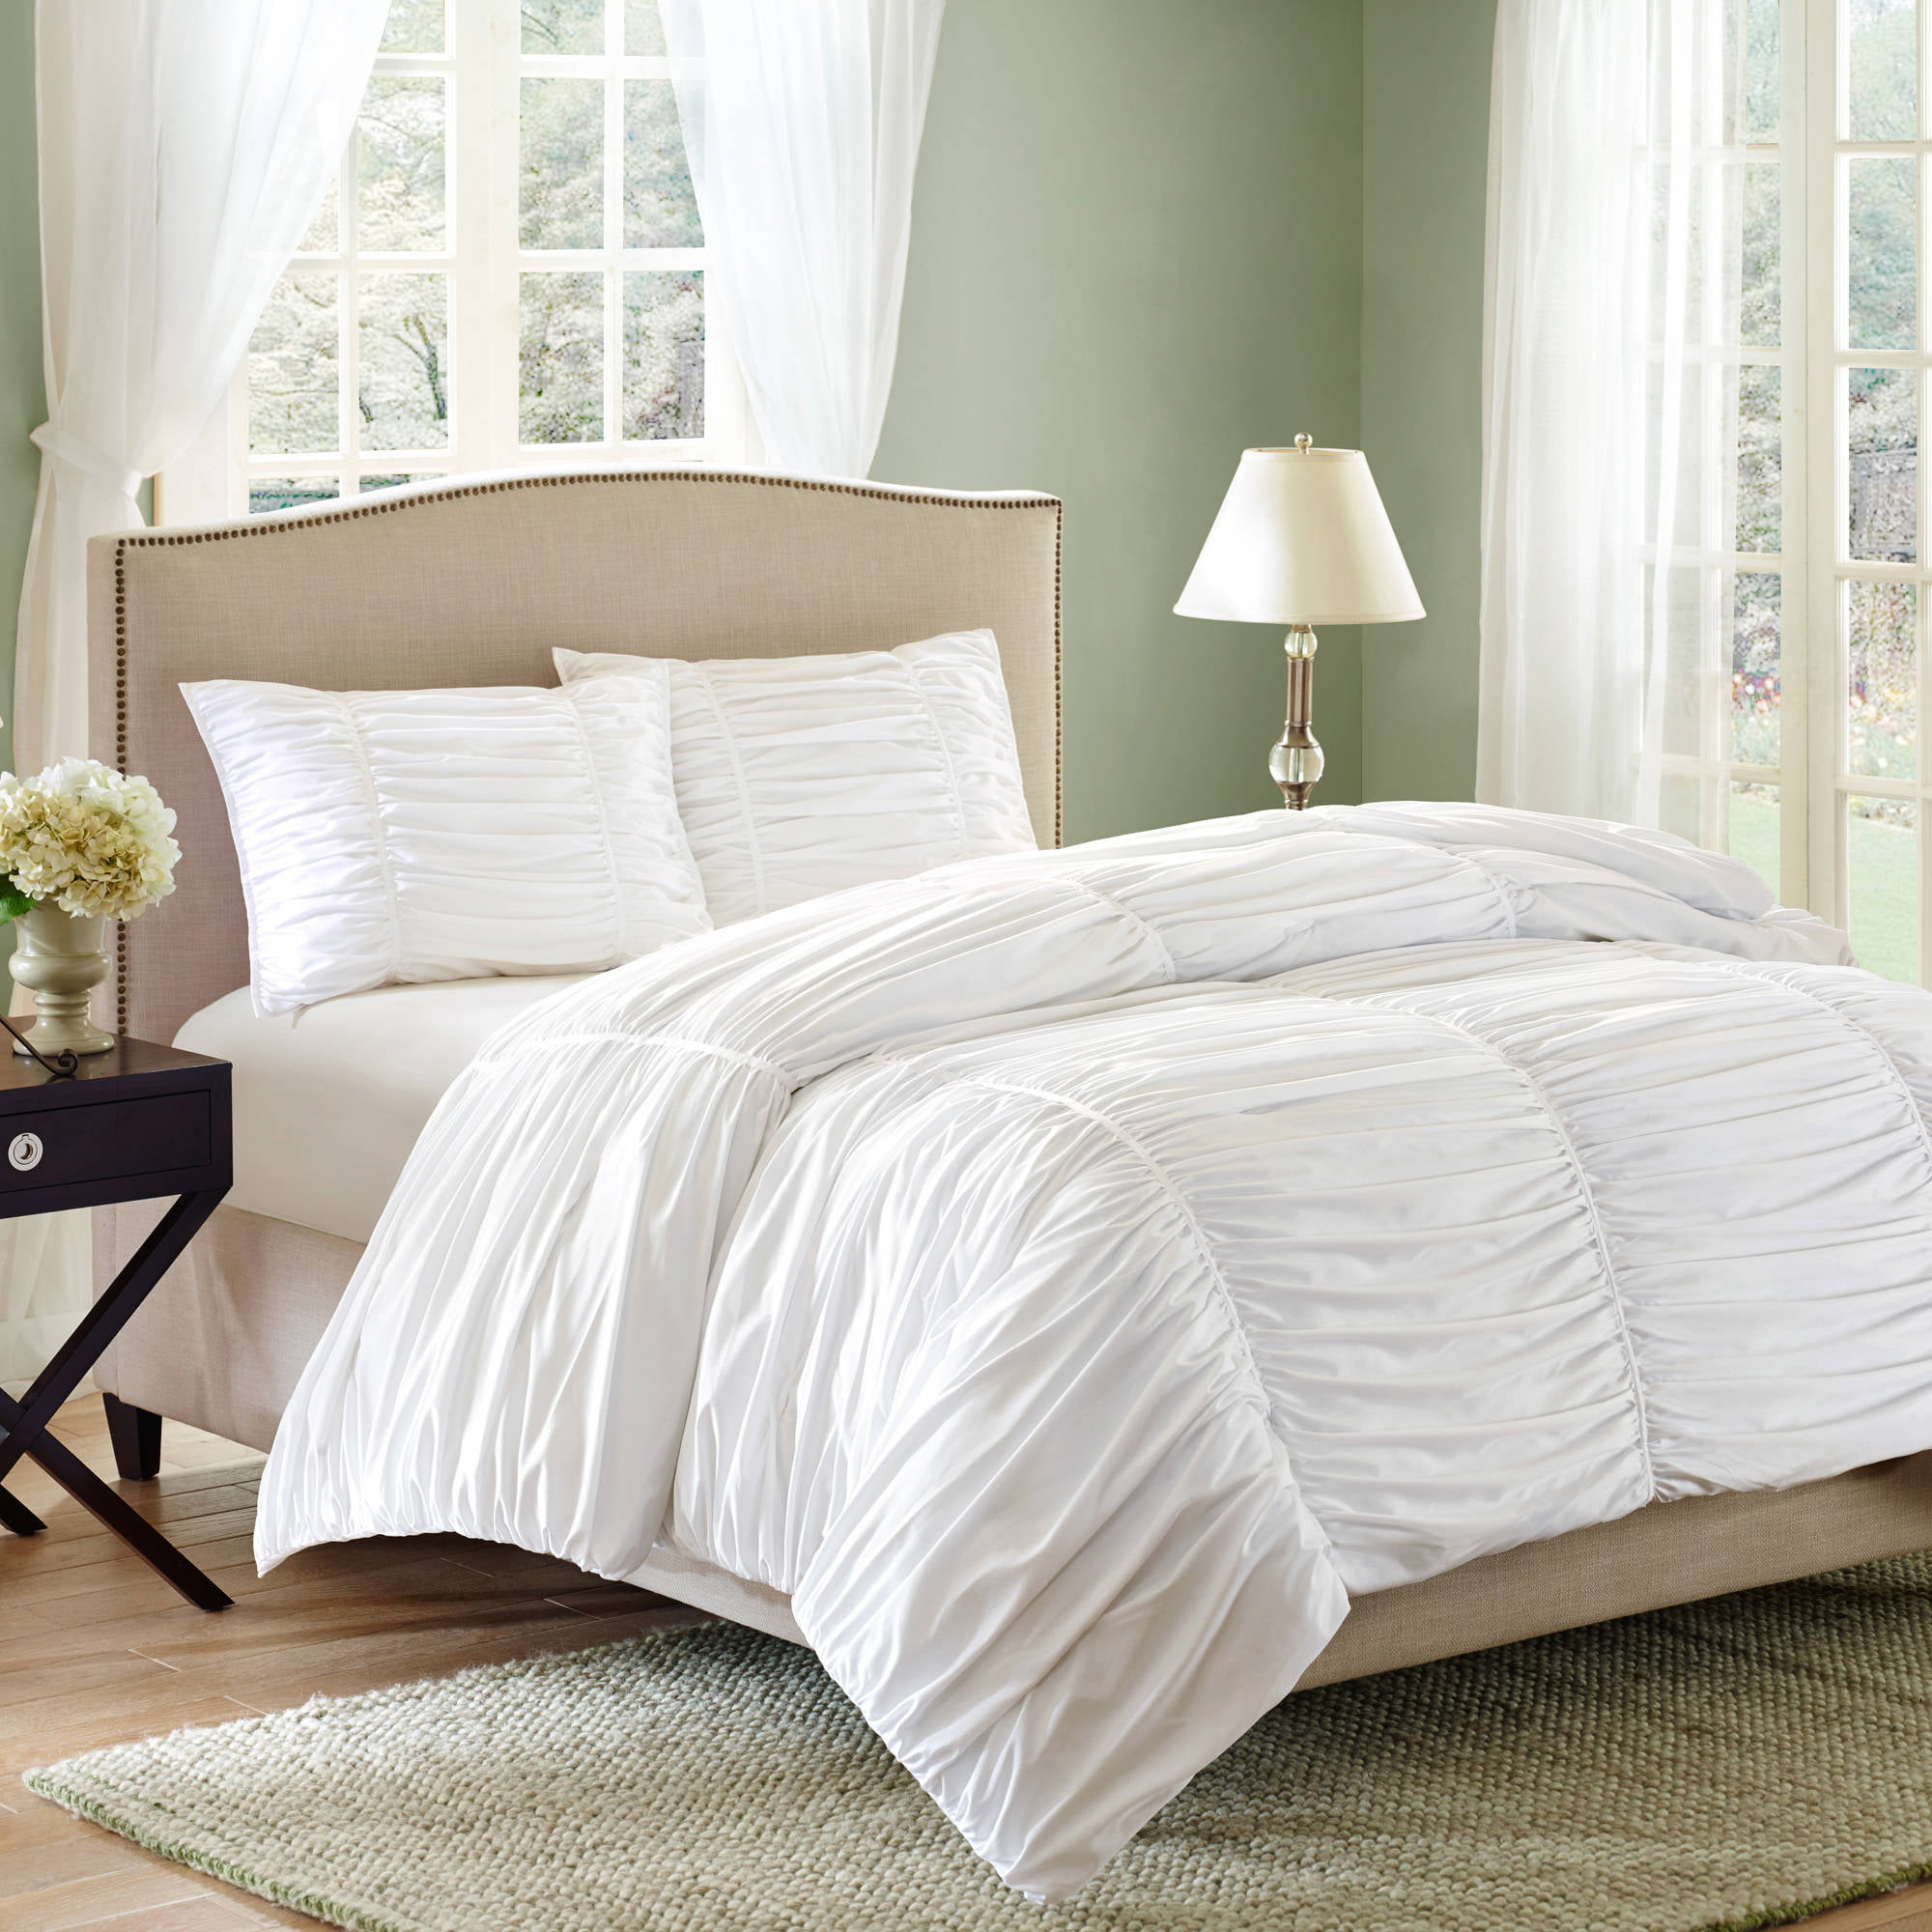 Better Homes And Gardens Ruching 3 Piece Comforter Set   Walmart.com